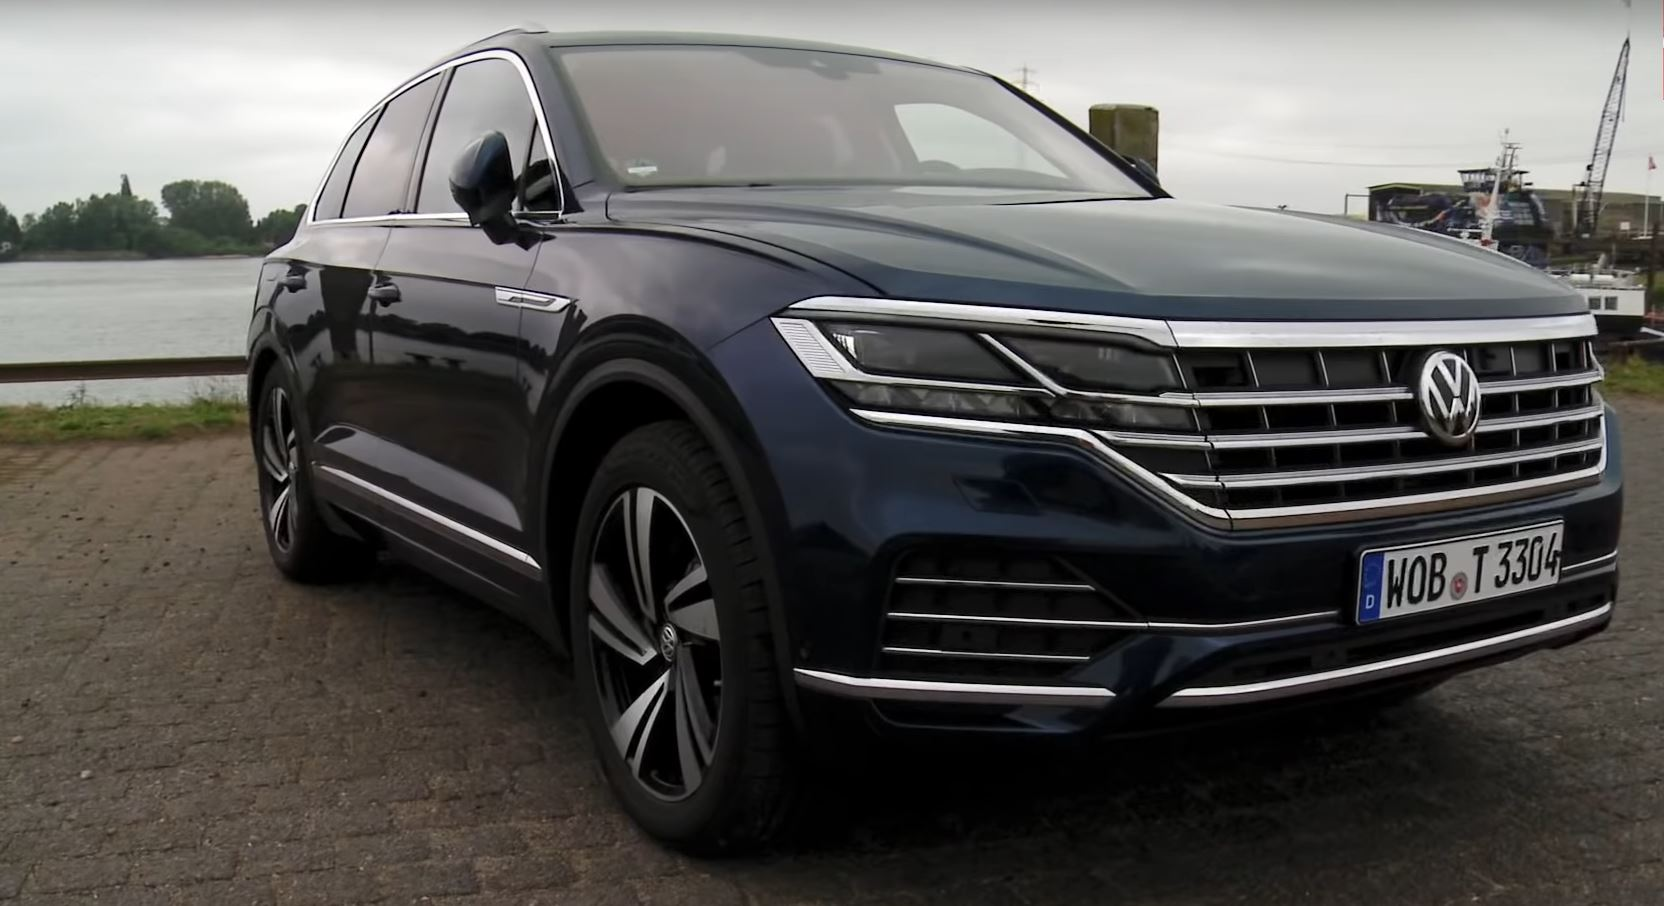 2019 Volkswagen Touareg Is Better Than Mercedes Gle But Reviewers Don T Love It